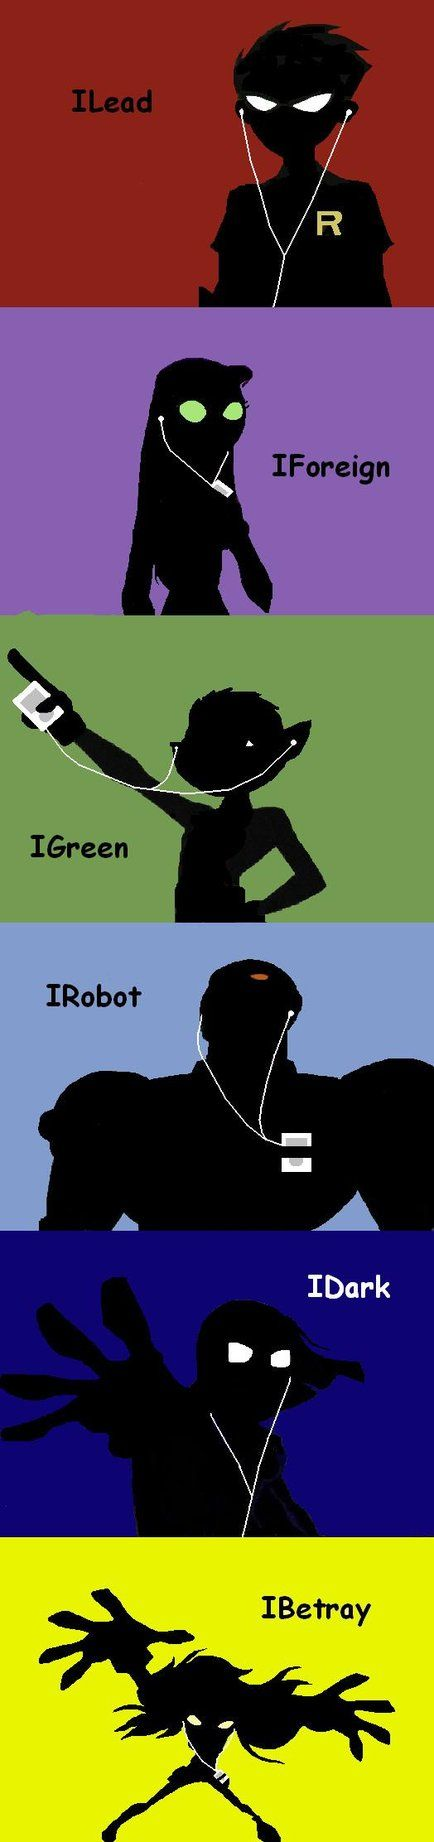 Teen titans iPod but I don't think that Terra should be labelled as betrayal